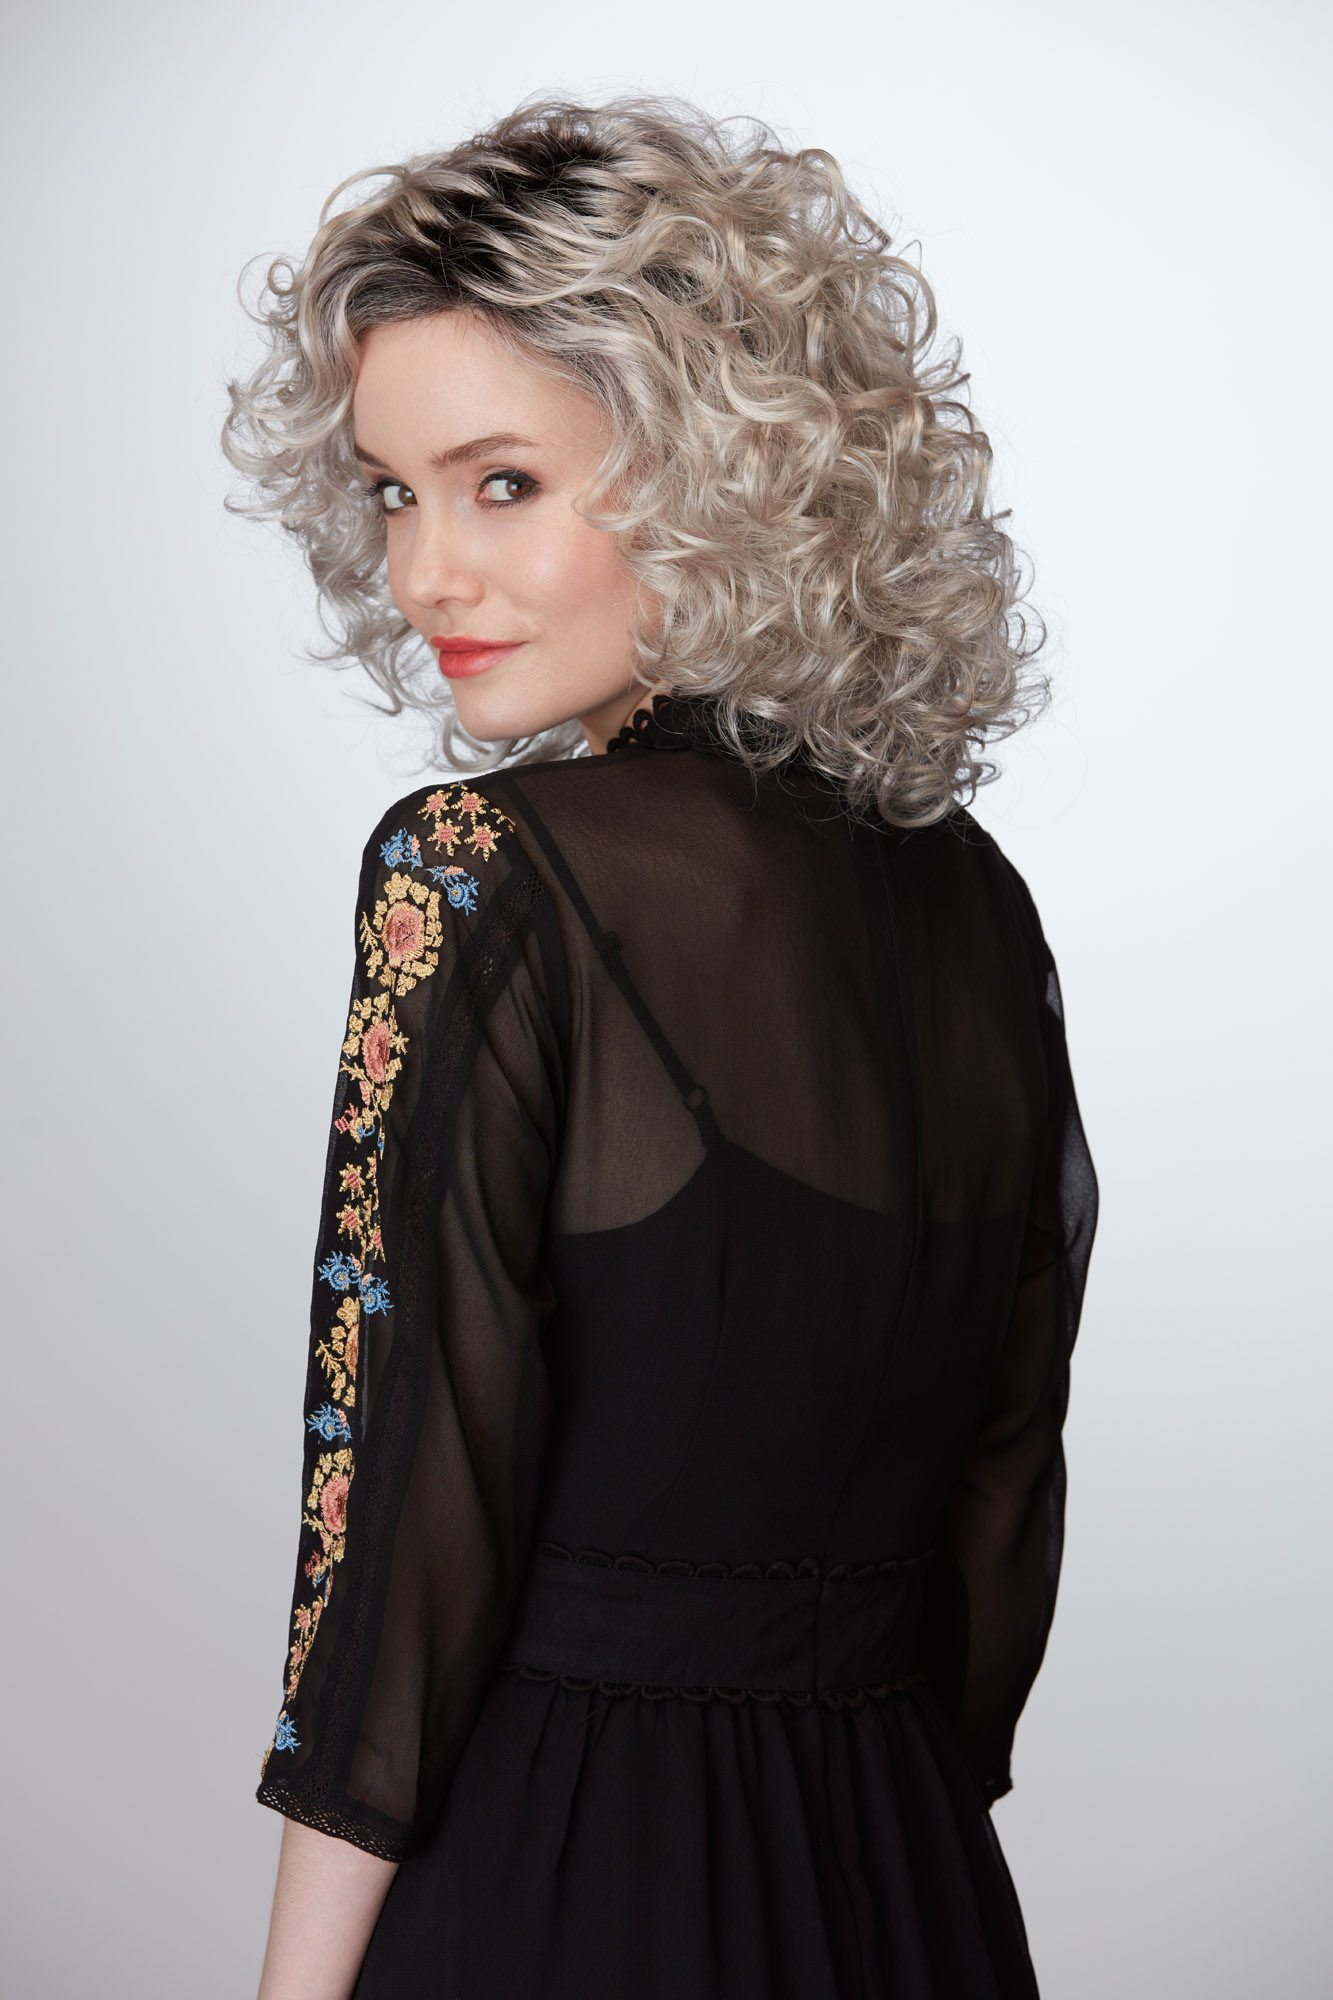 Compelling Wig Natural Image - image Compelling_G602_331 on https://purewigs.com